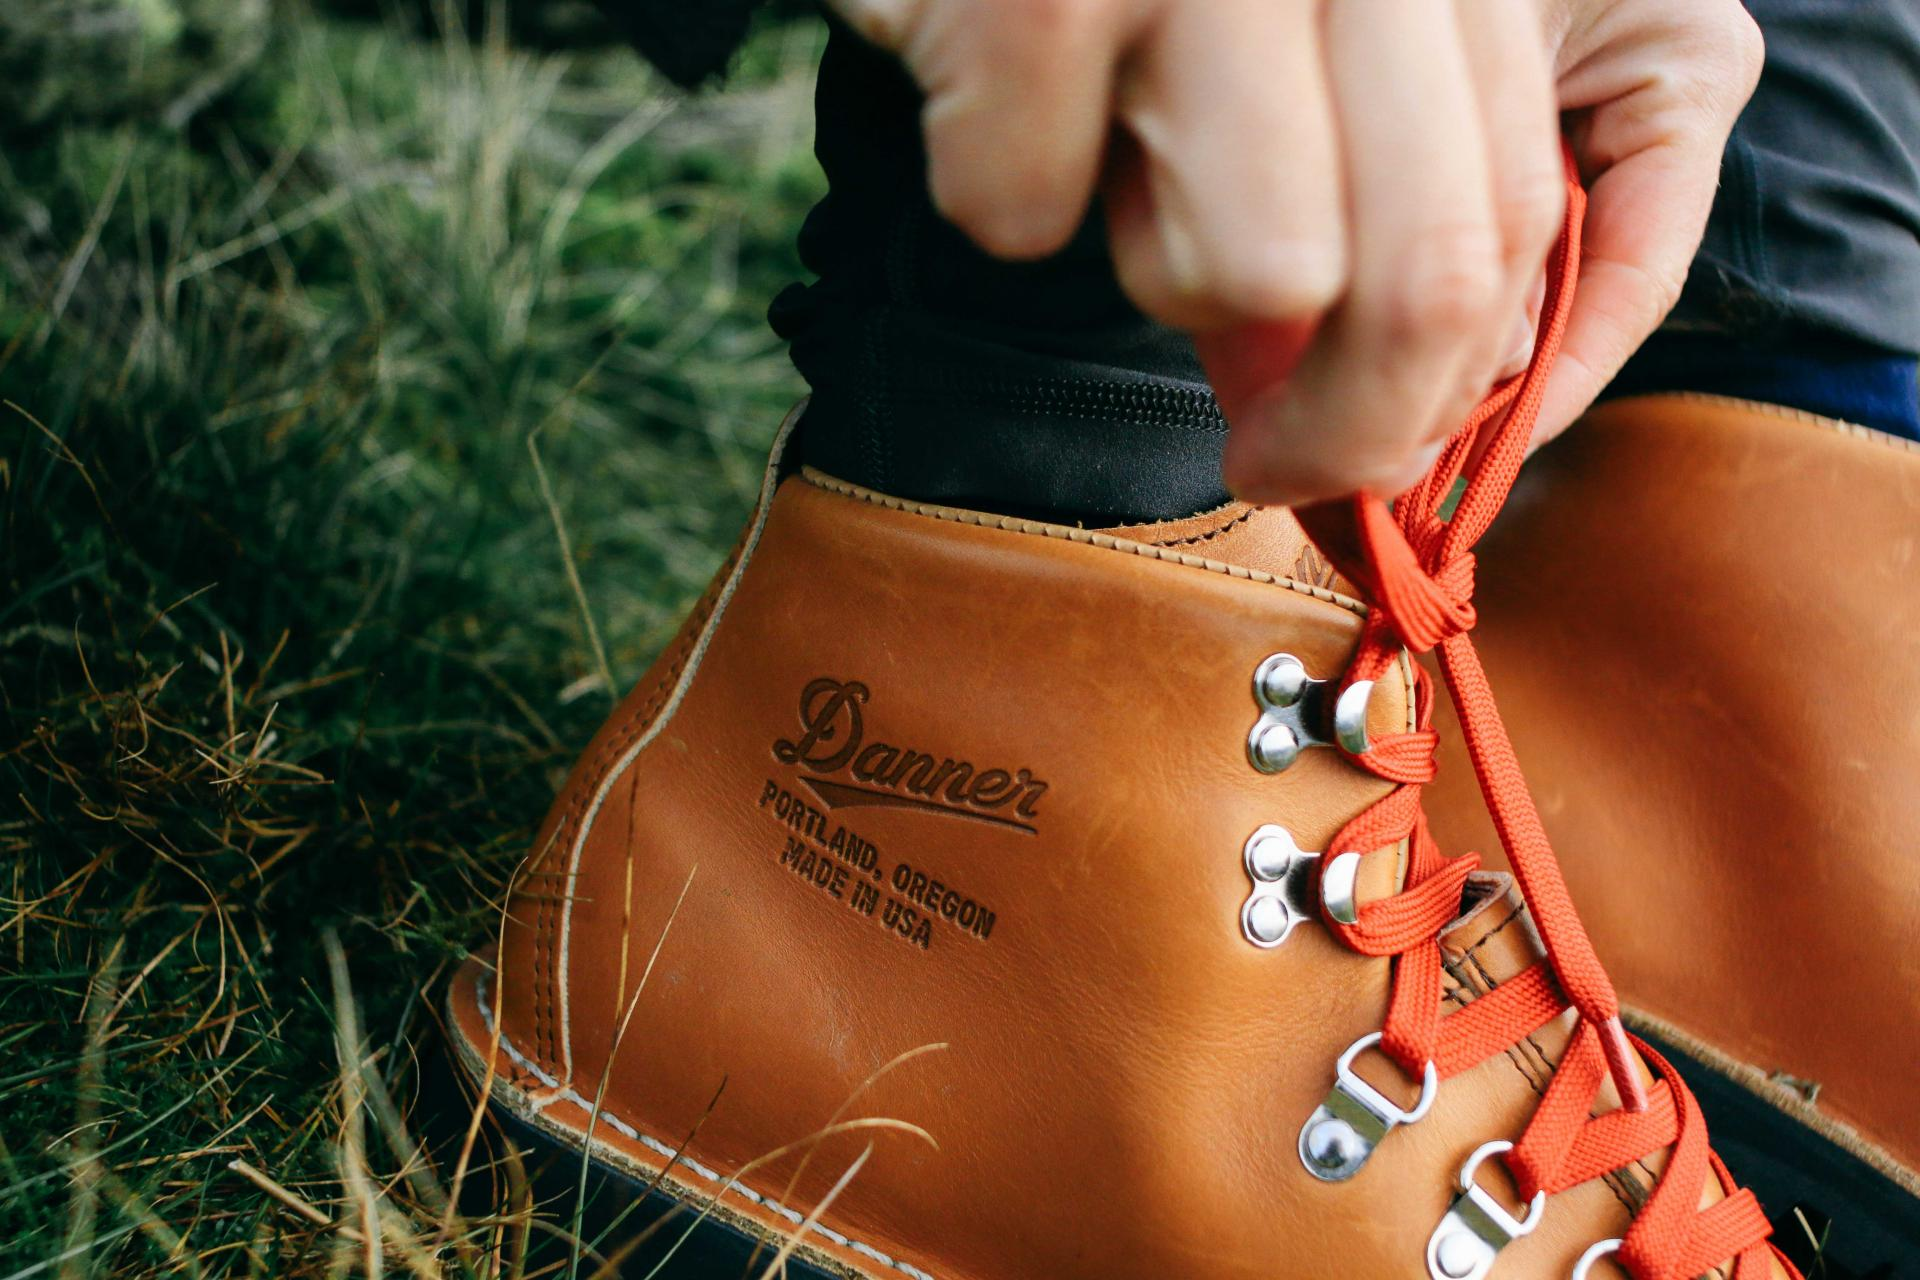 Danner Mountain Light Cascade review